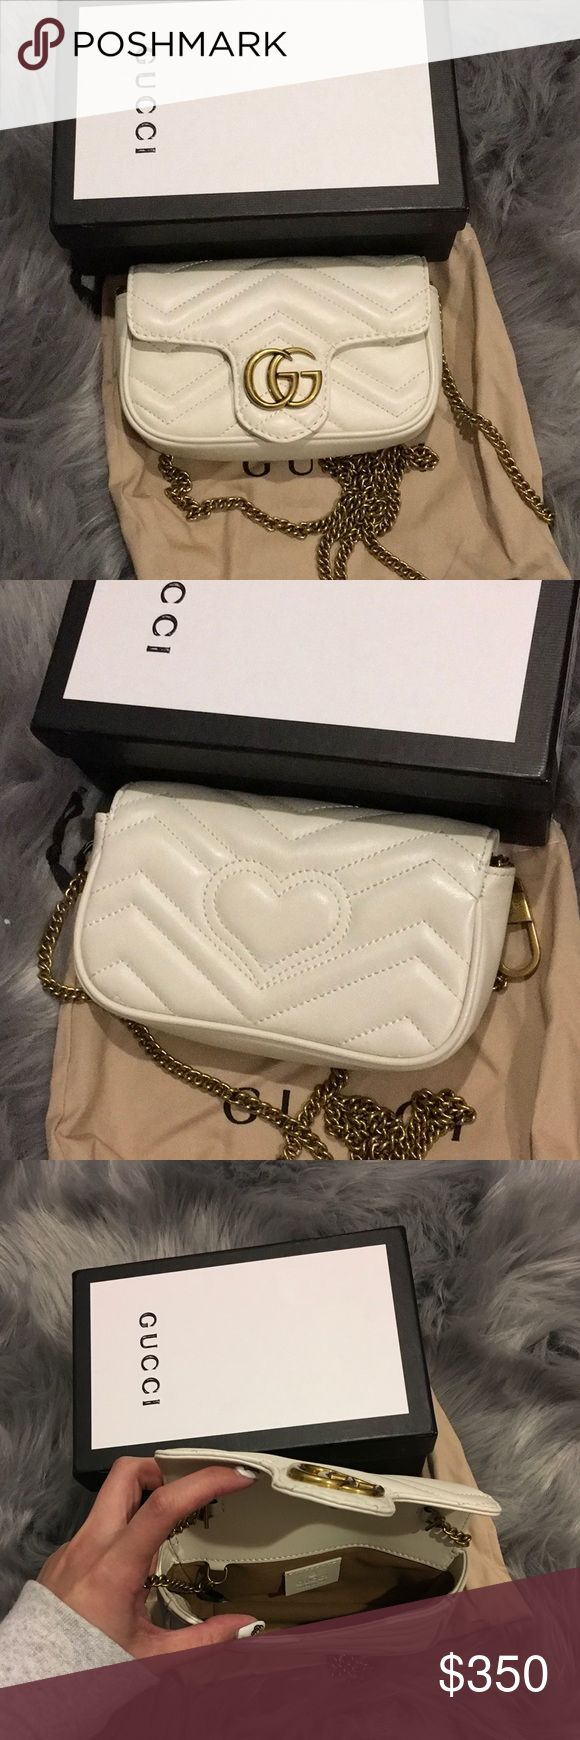 """Gucci nano crossbody bag Could fit iphone 7 plus as shown on picture.  Chain shoulder strap with 23.5"""" drop. Super mini size: 6.5""""W x 4""""H x 2""""D. Bags Crossbody Bags"""